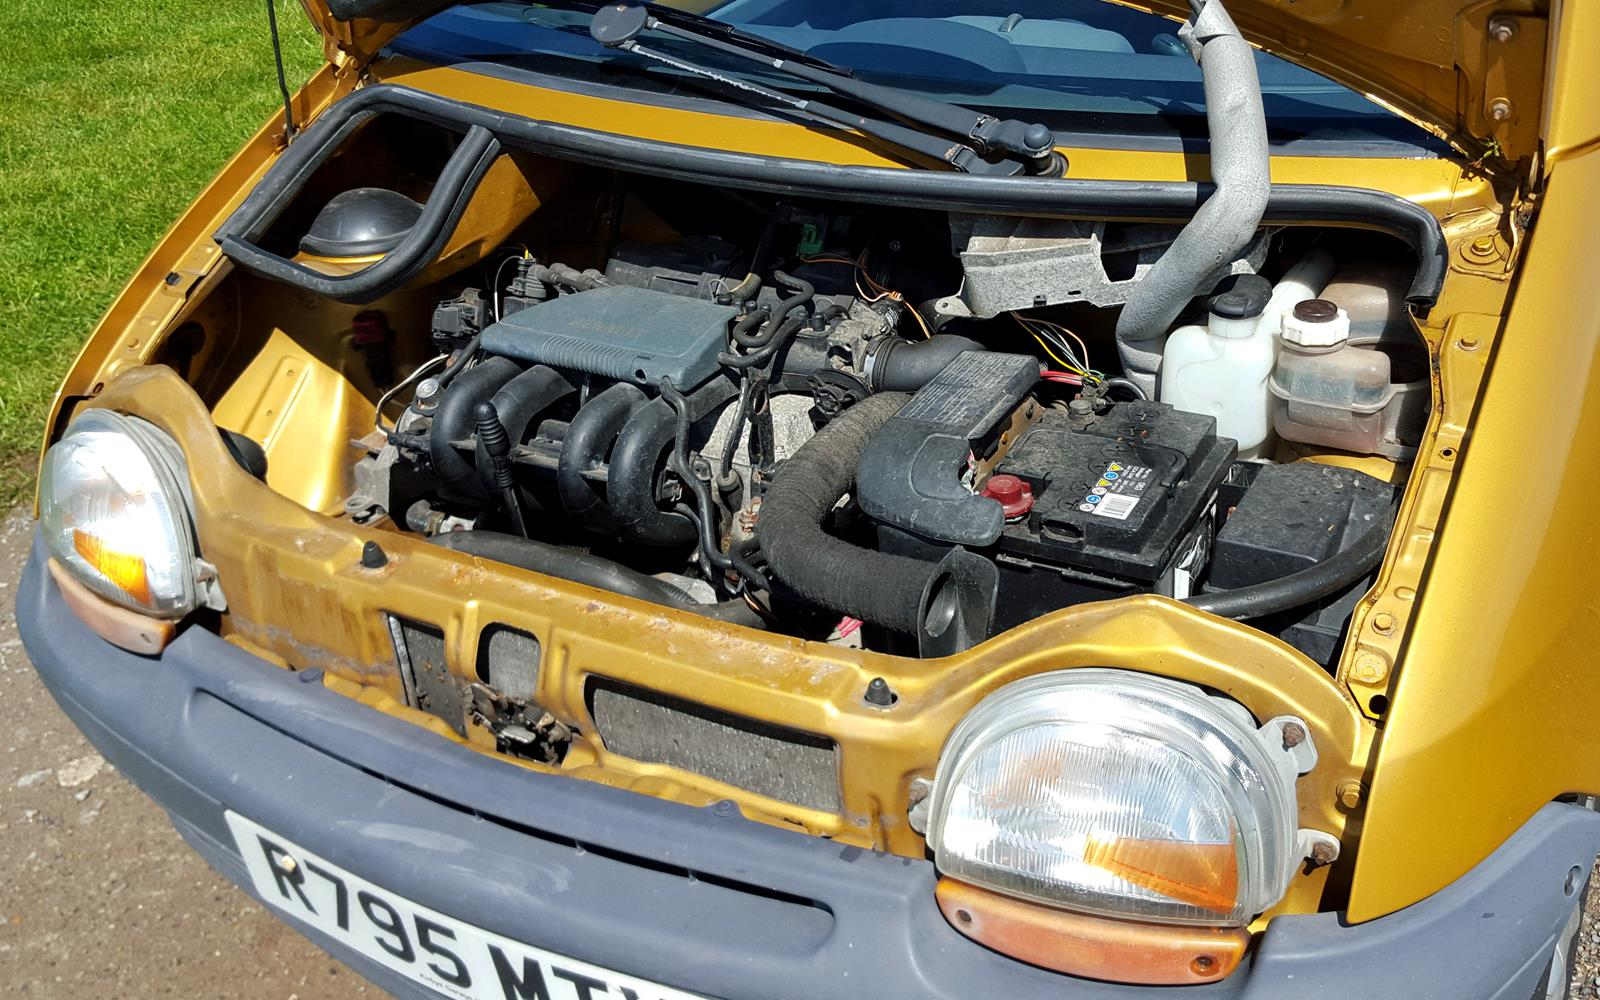 Renault Twingo 1998 Engine – Front Seat Driver